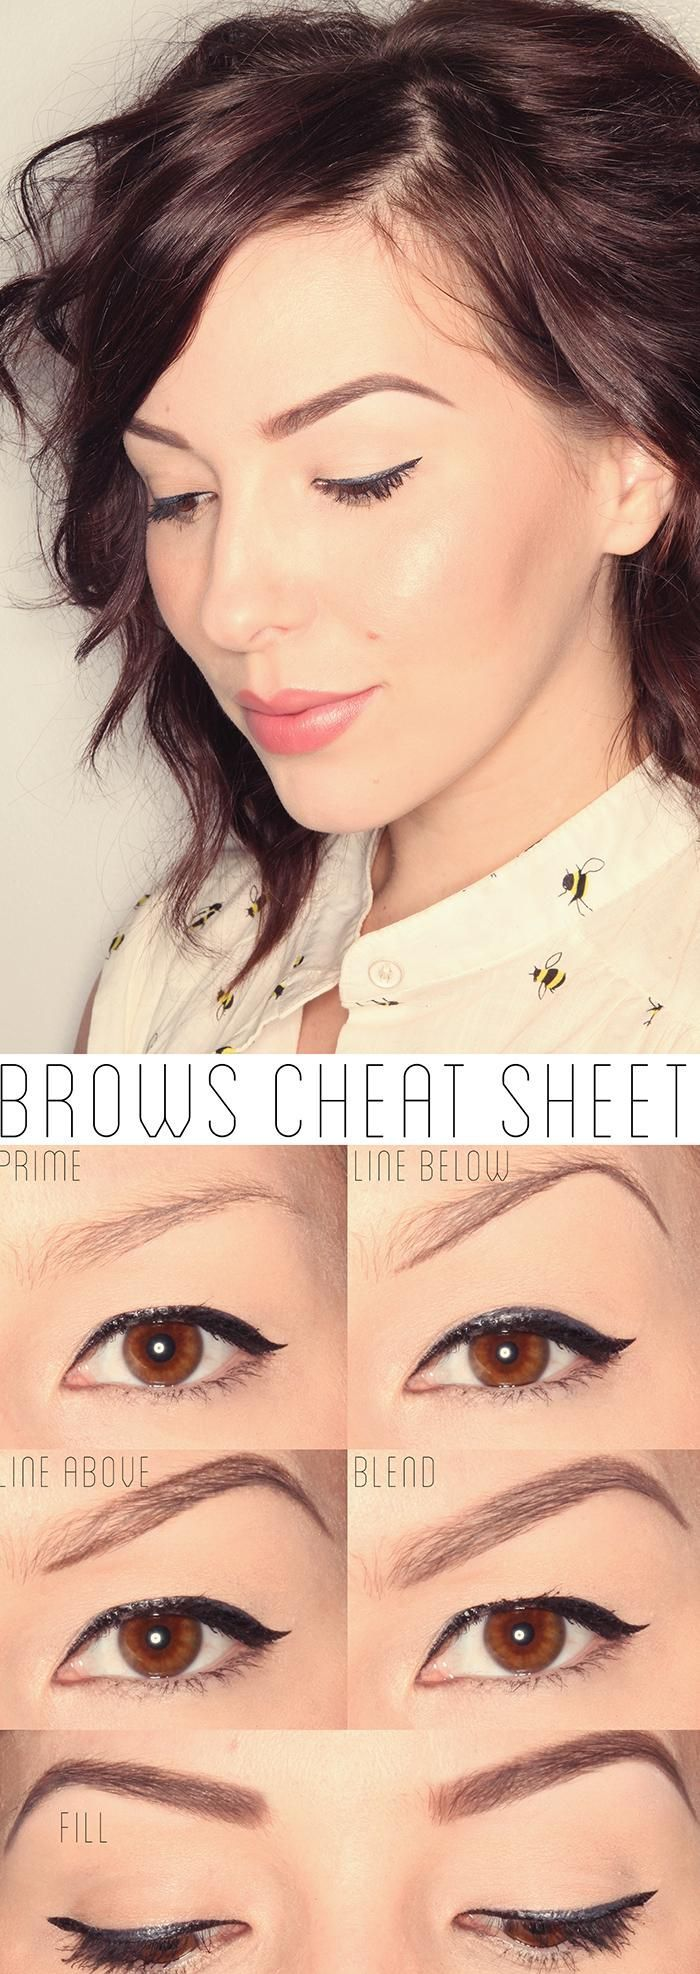 how to make your eyebrows more symmetrical